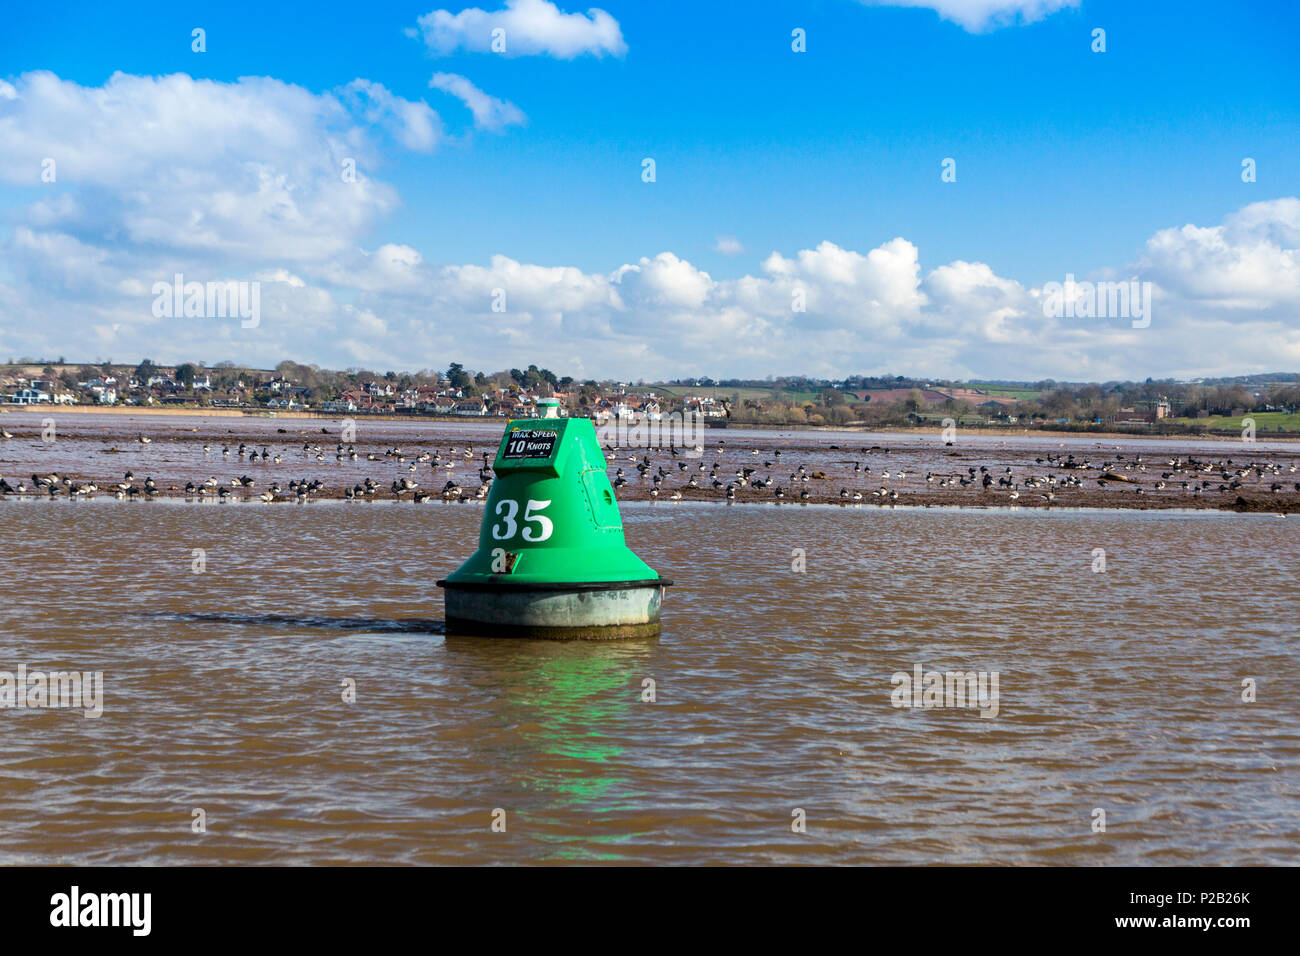 An assortment of wading birds feeding on the mudflats of the River Exe near Exton, Devon, England, UK - Stock Image